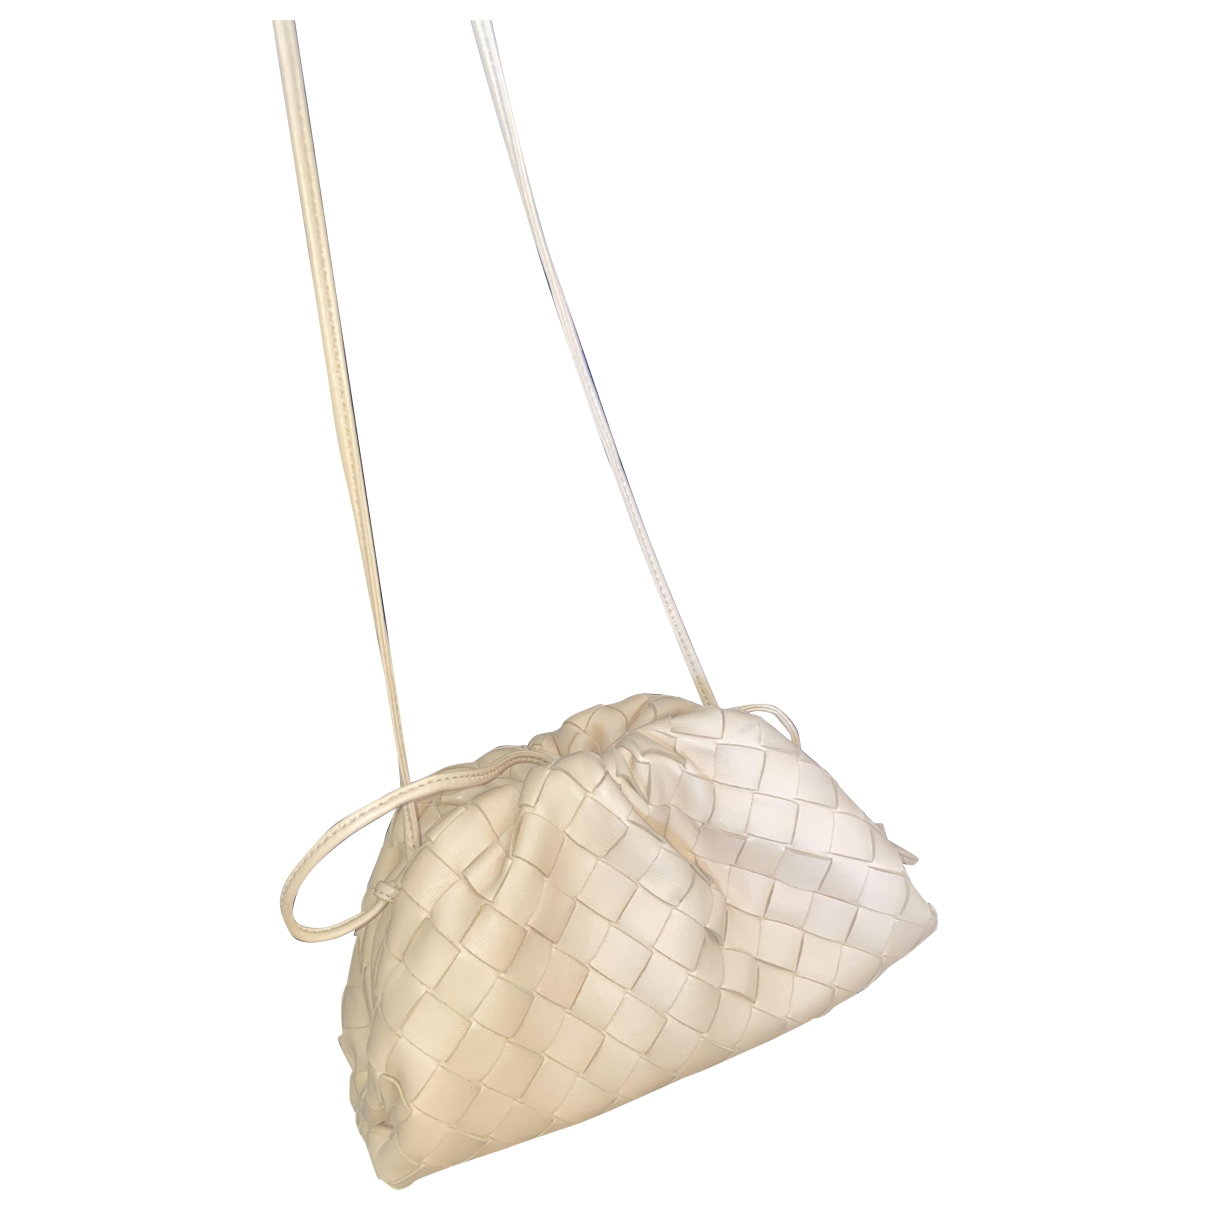 Bottega Veneta Pochette Knot Beige Leather handbag for Women \N